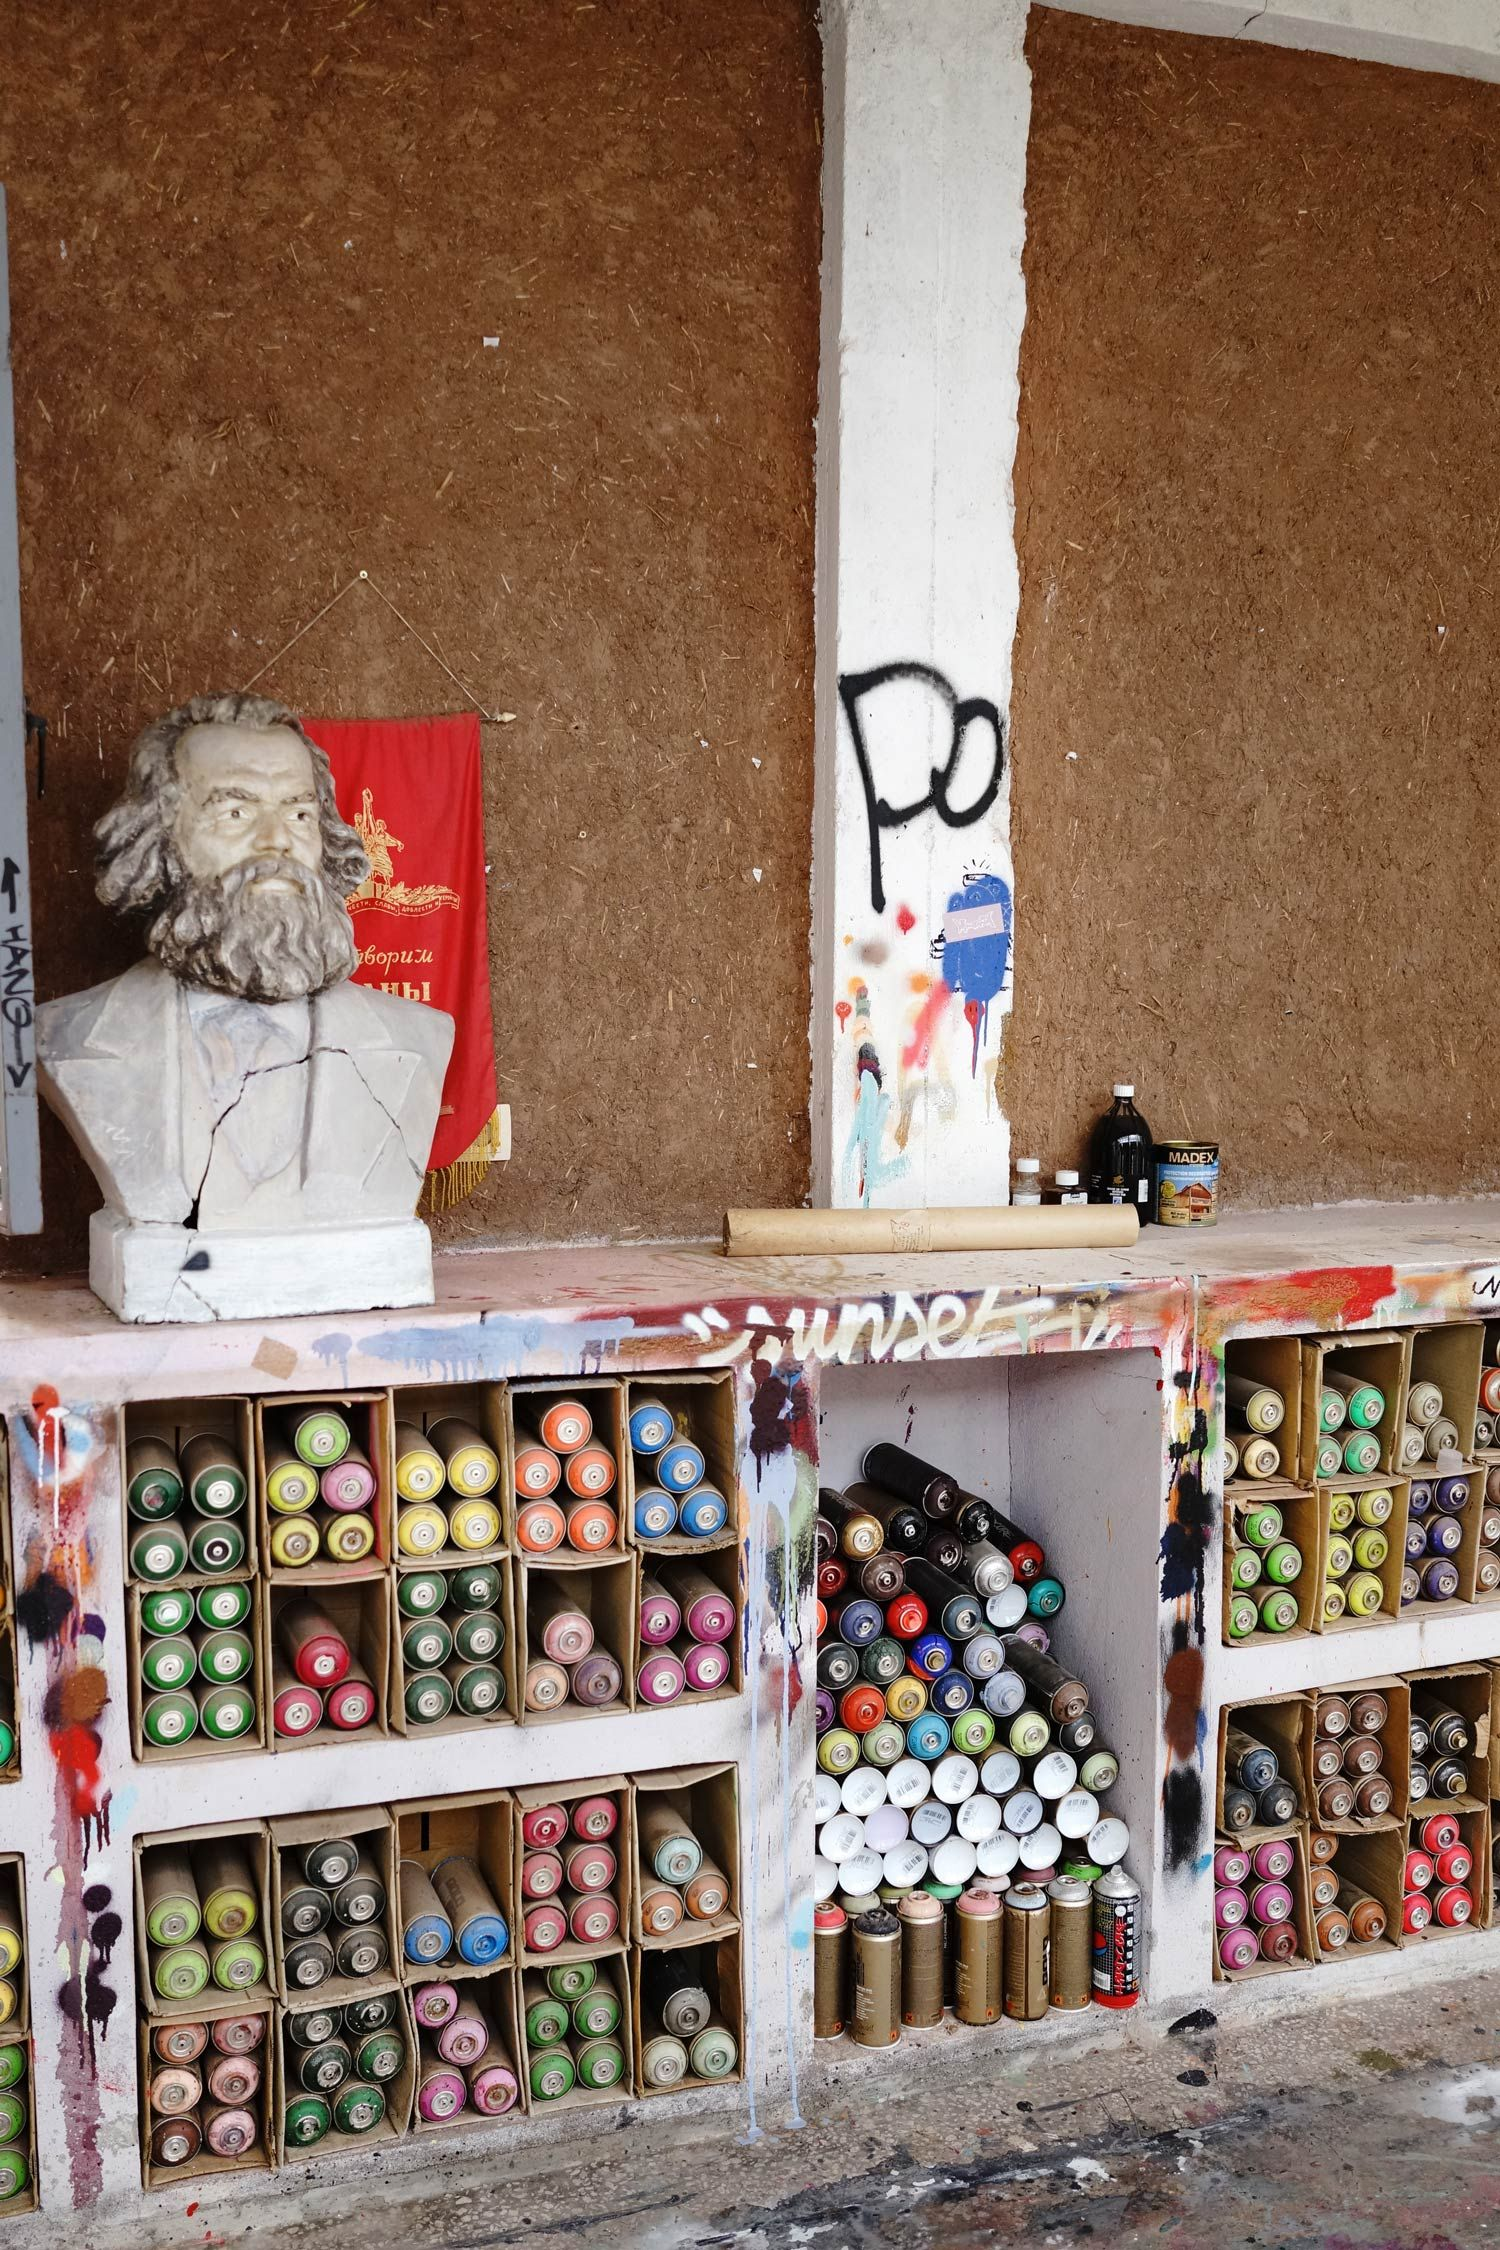 <p>Jardin Rouge is an astounding artists' residency nestled nearby a typical Moroccan village in the outskirts of Marrakech.<!--more--></p>